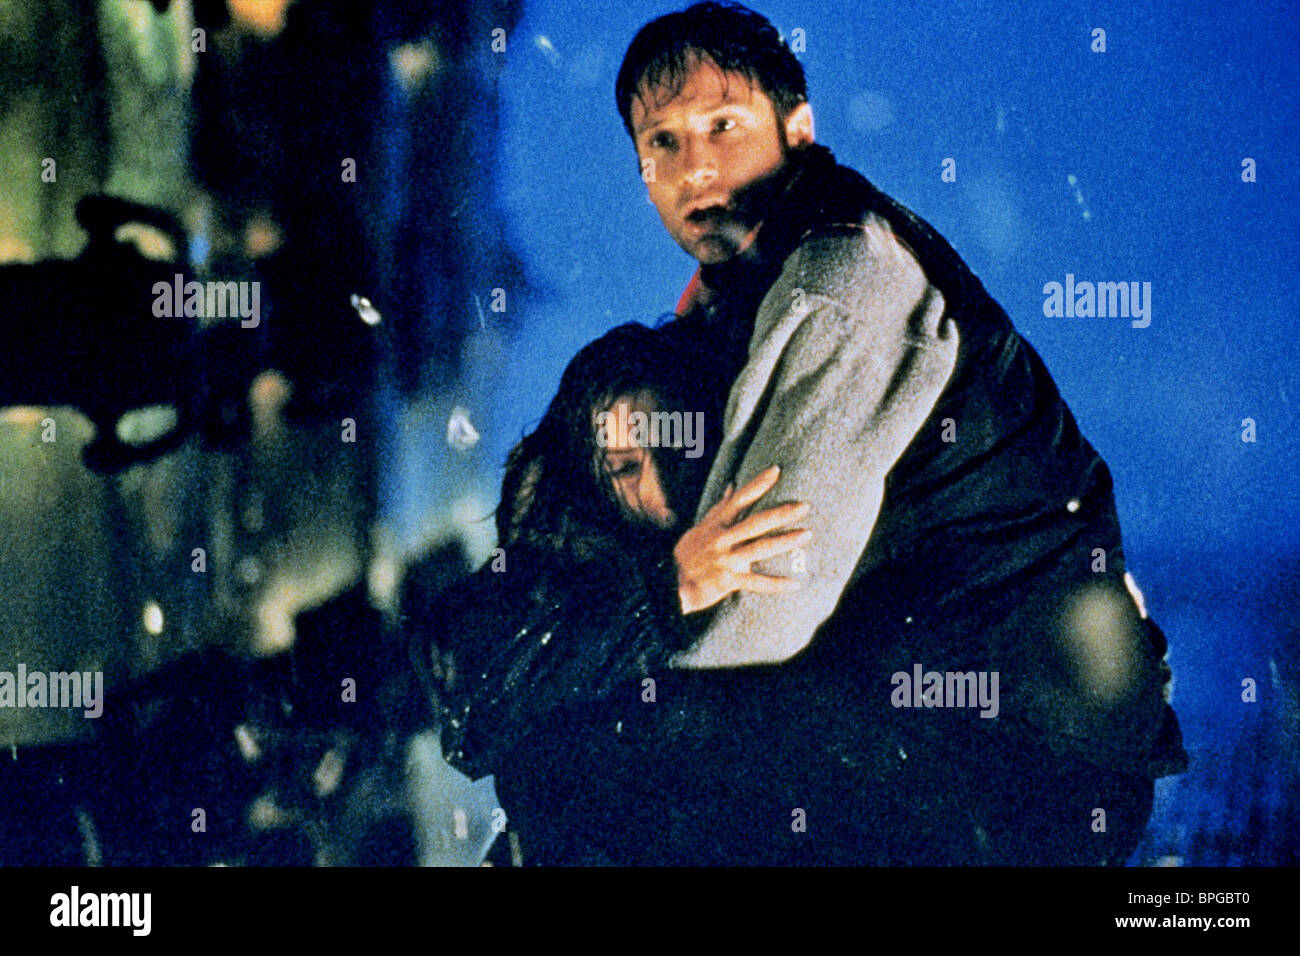 Gillian Anderson David Duchovny The X Files 1998 Stock Photo Alamy